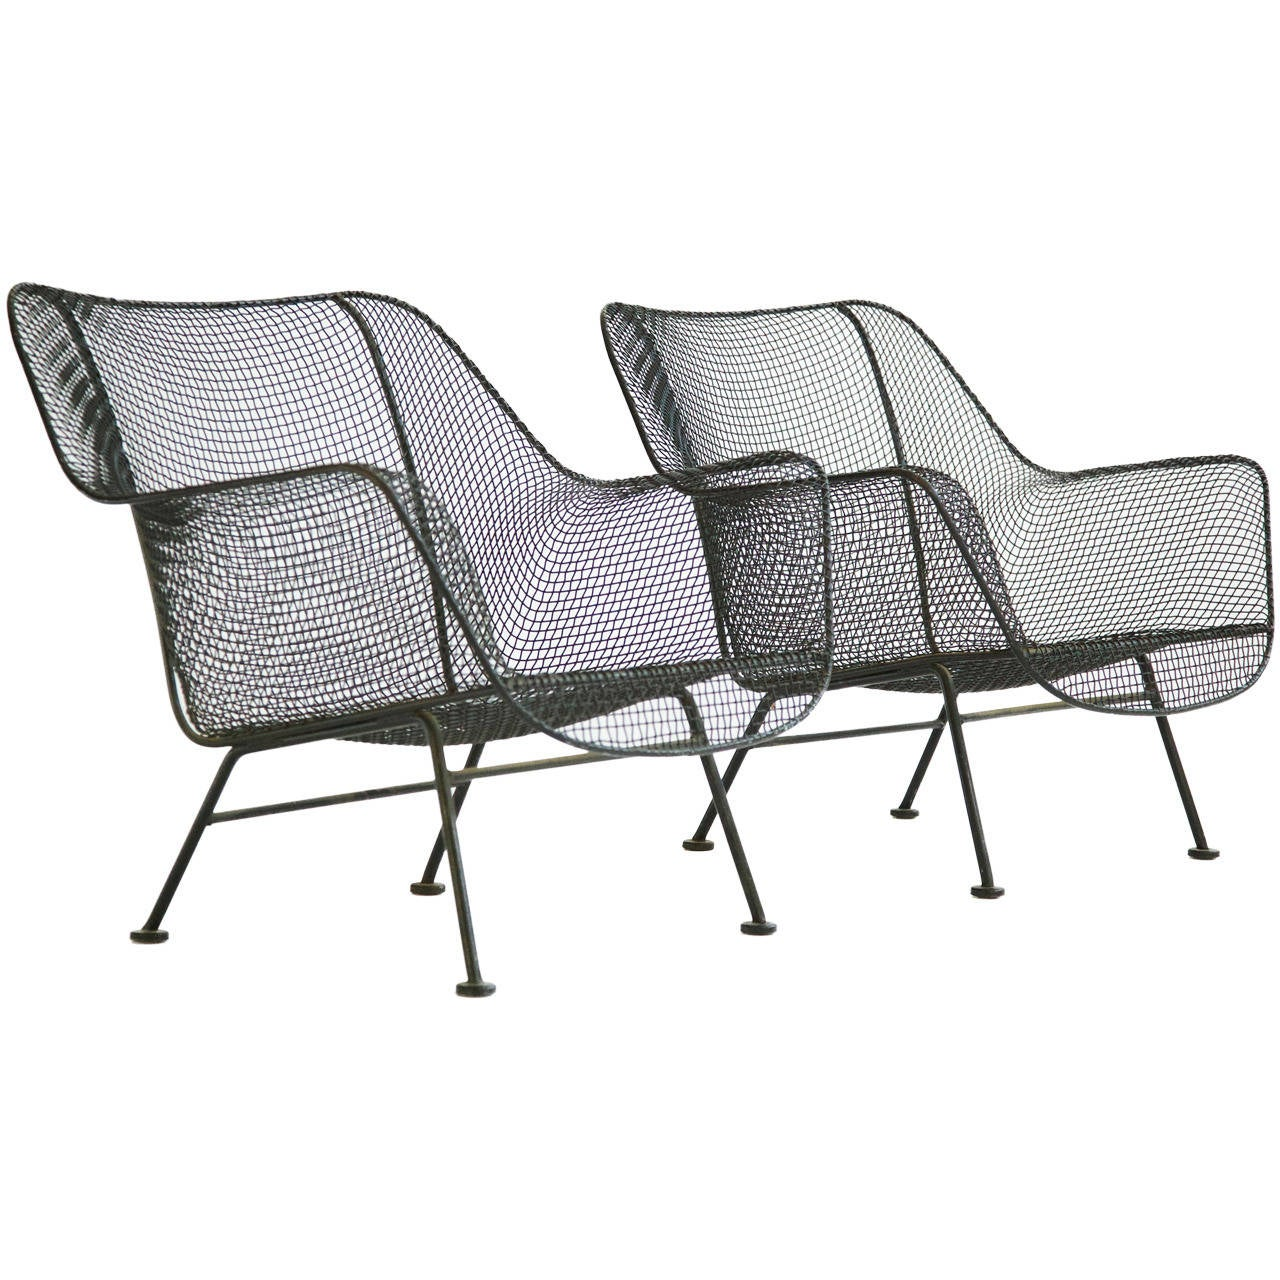 Pair of russell woodard outdoor lounge chairs at 1stdibs for Woodard outdoor furniture